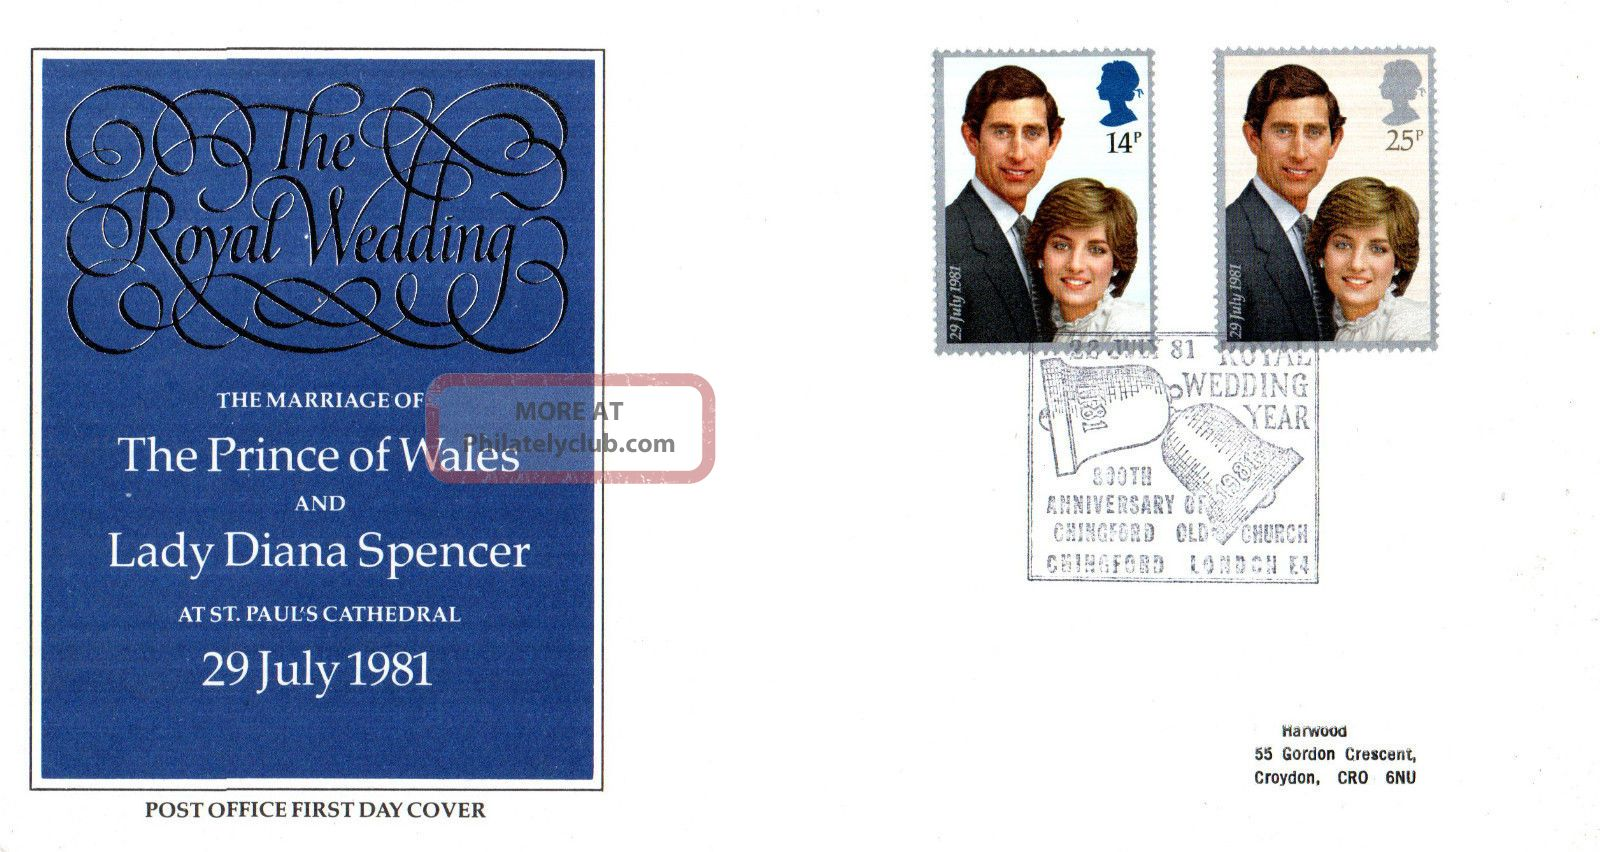 22 July 1981 Royal Wedding Post Office First Day Cover Chingford Old Church Shs Topical Stamps photo